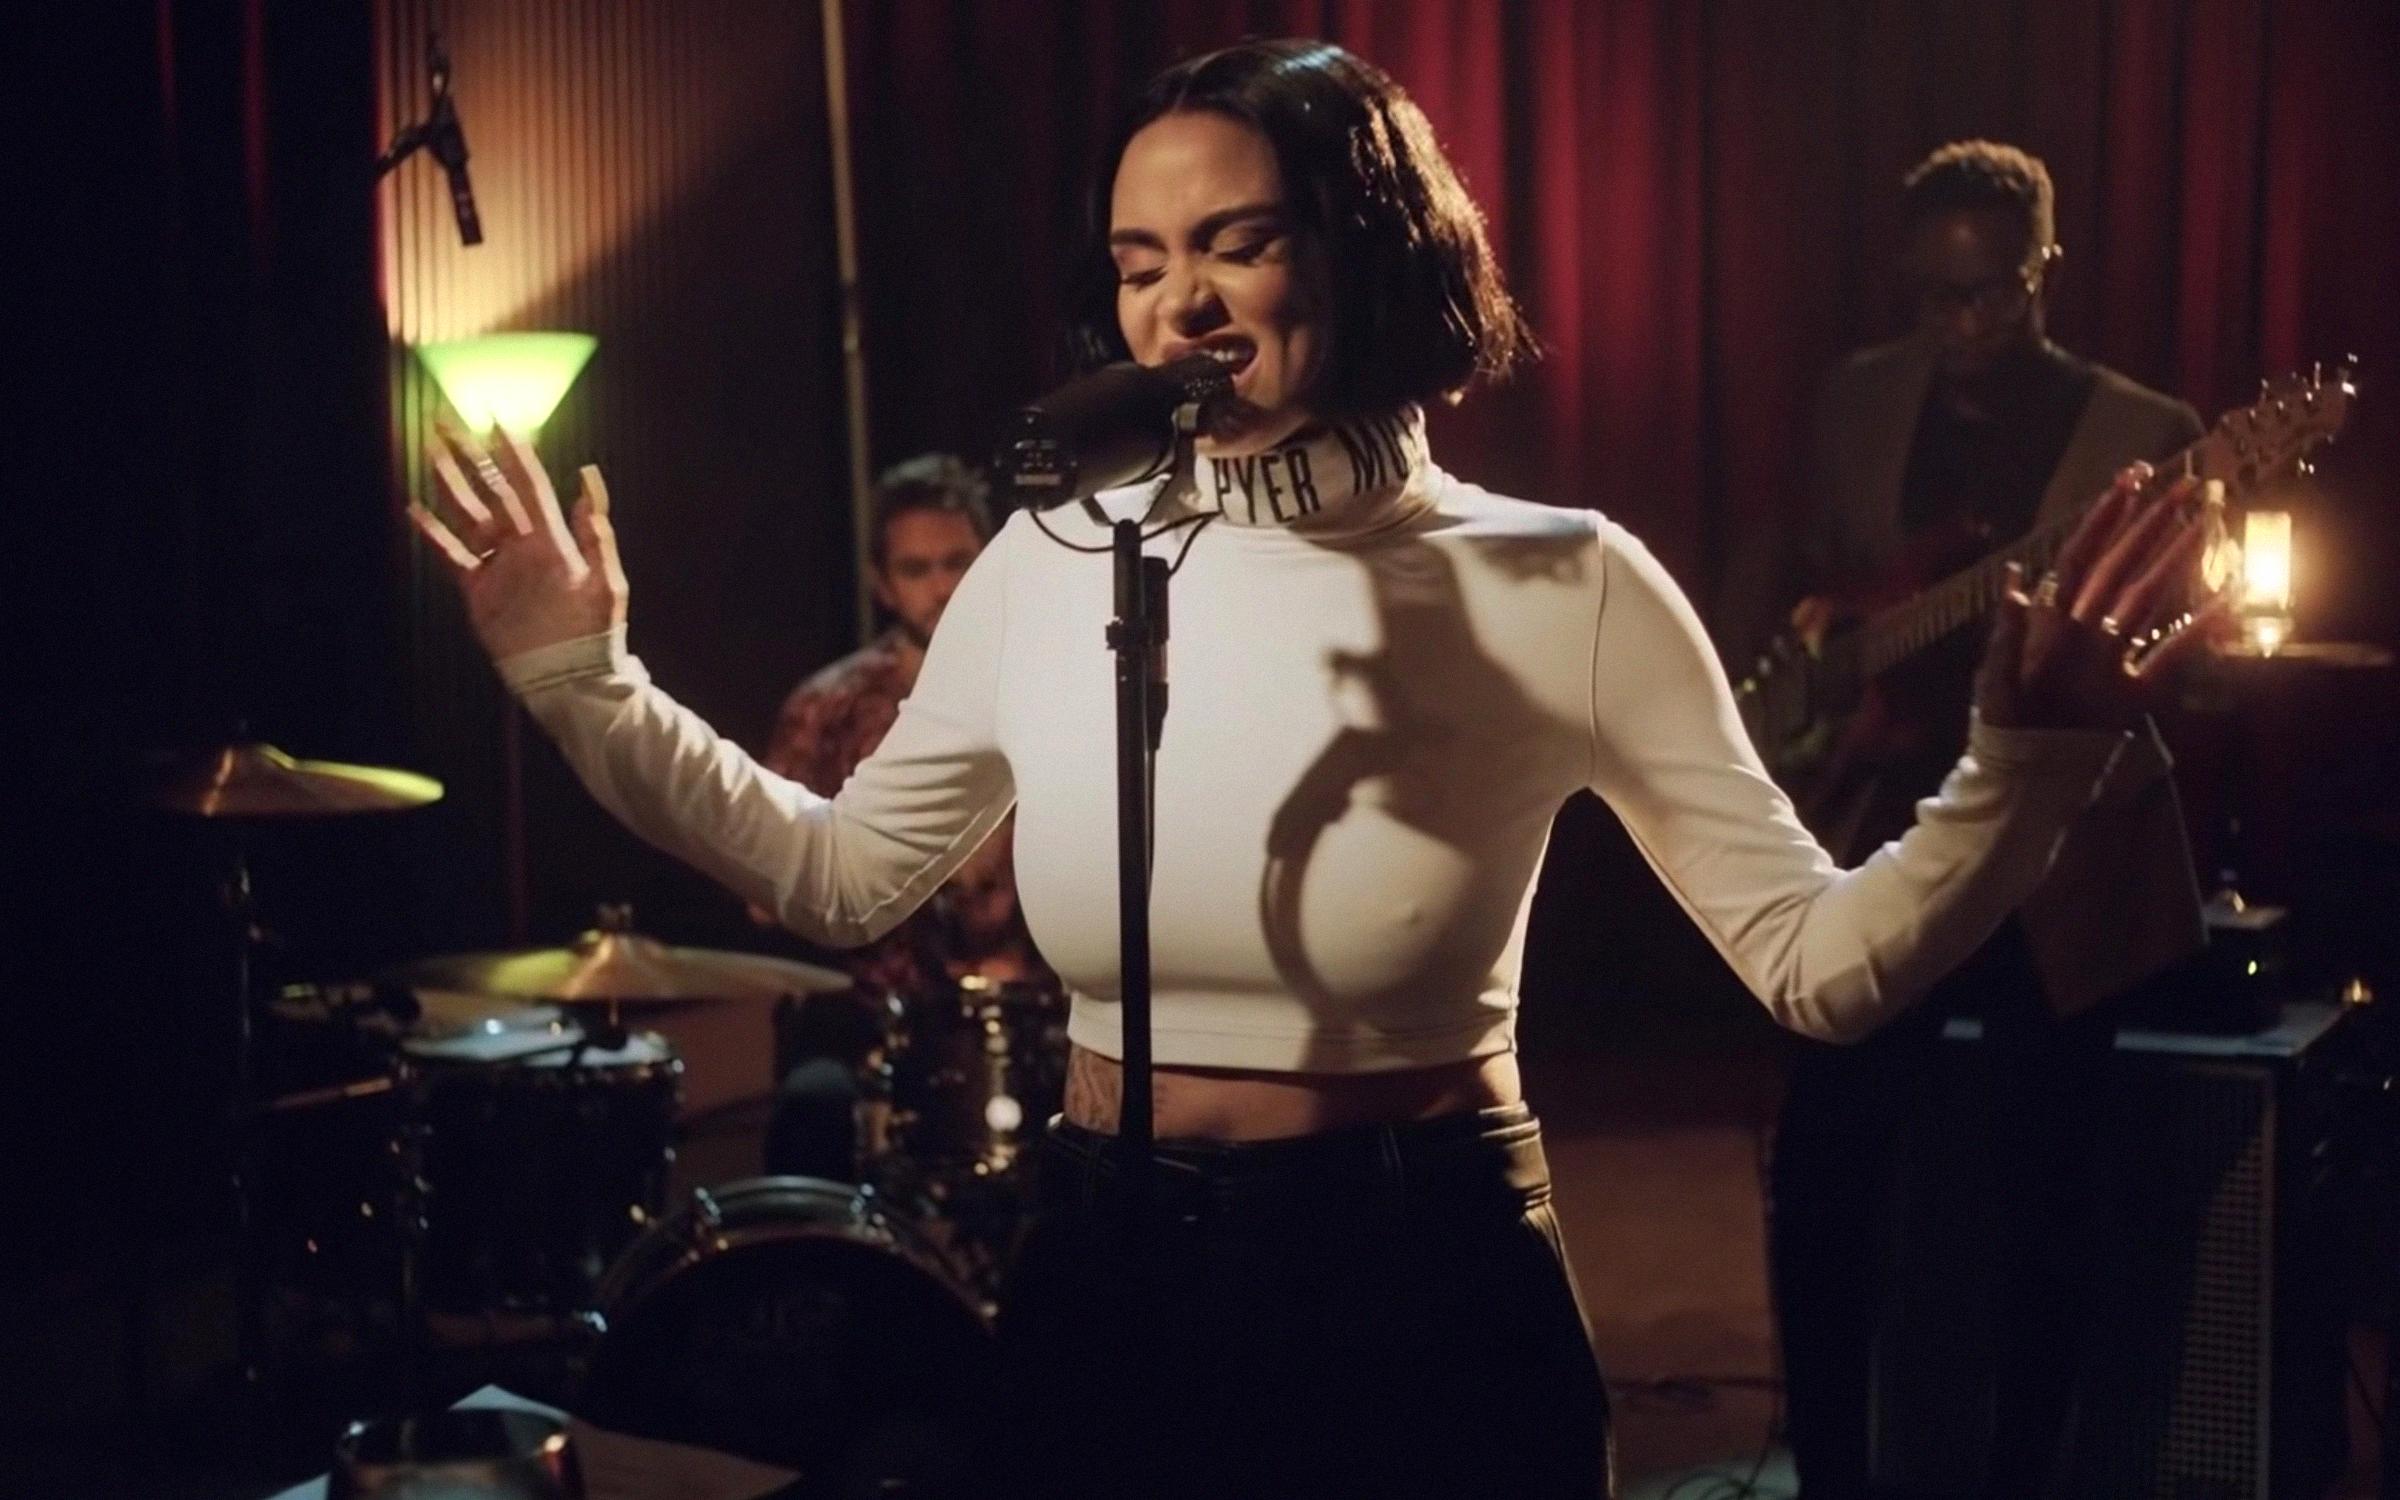 Kehlani, a light skinned Black woman, has short black hair parted down the center. She sings on stage while wearing a white turtleneck.